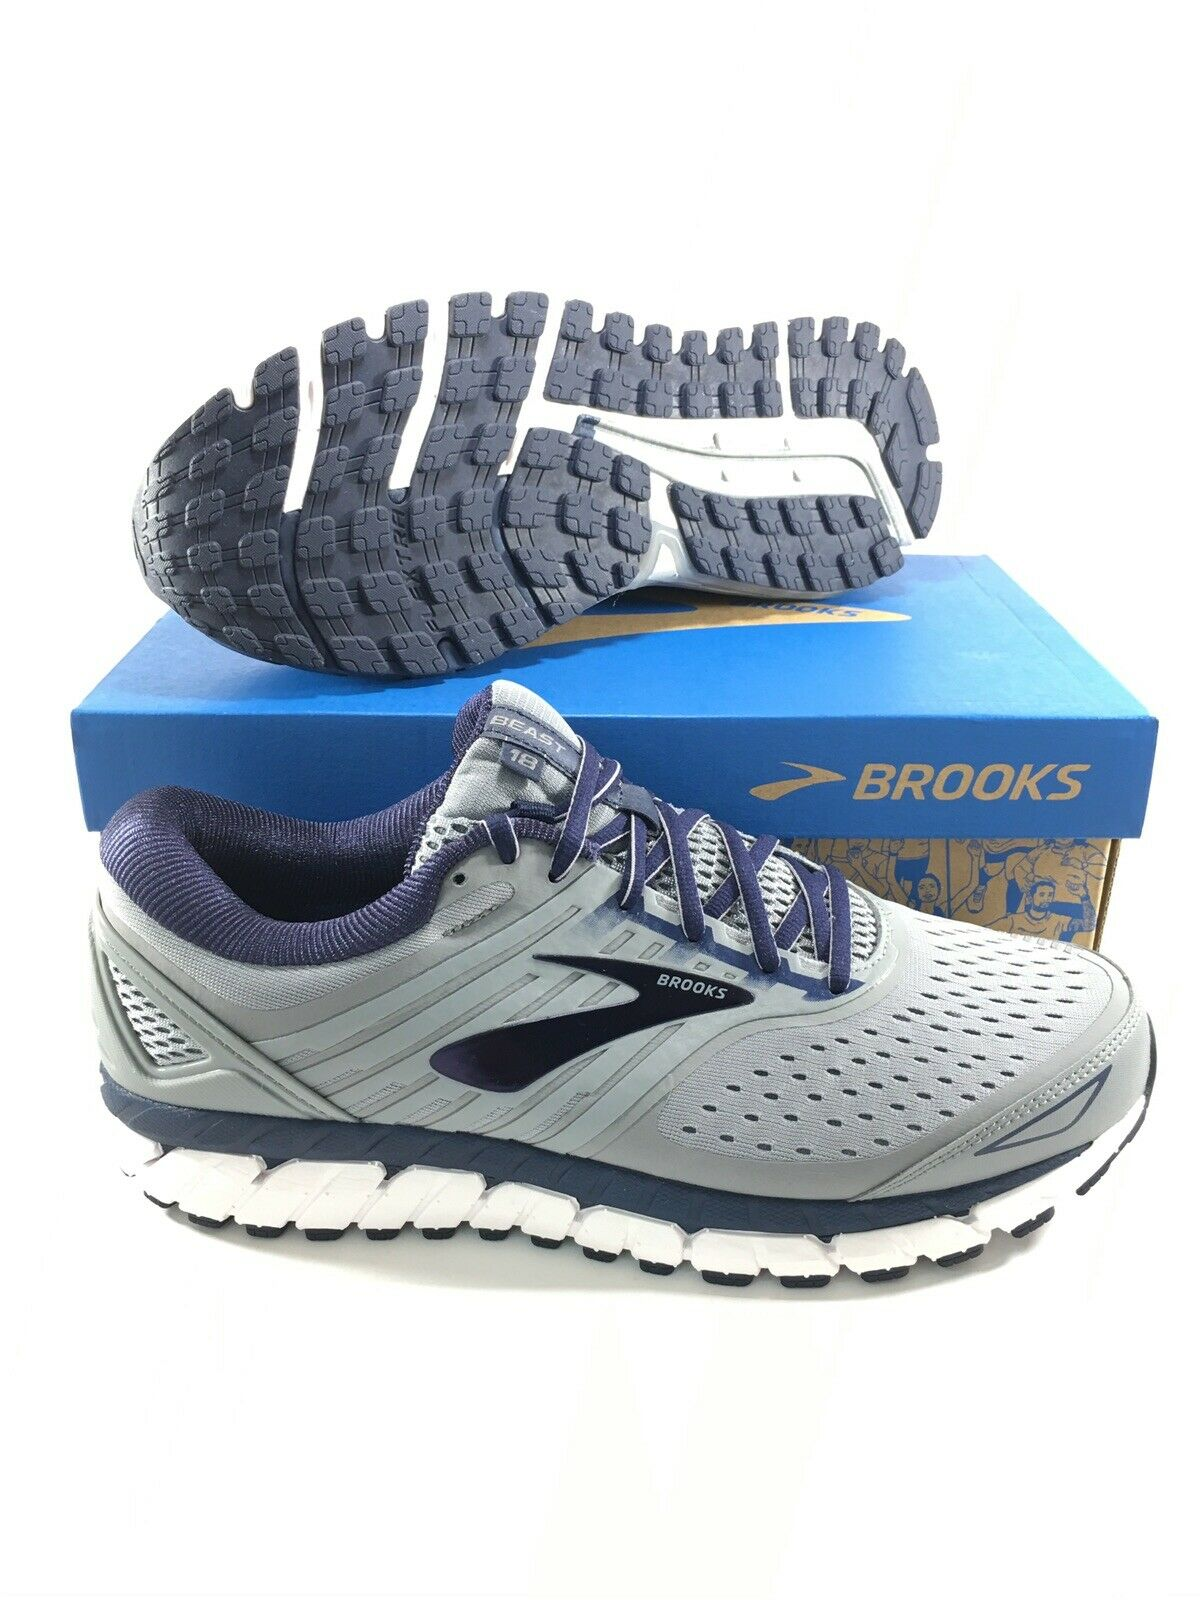 Brooks Mens Size 10 4e Extra Wide EEEE